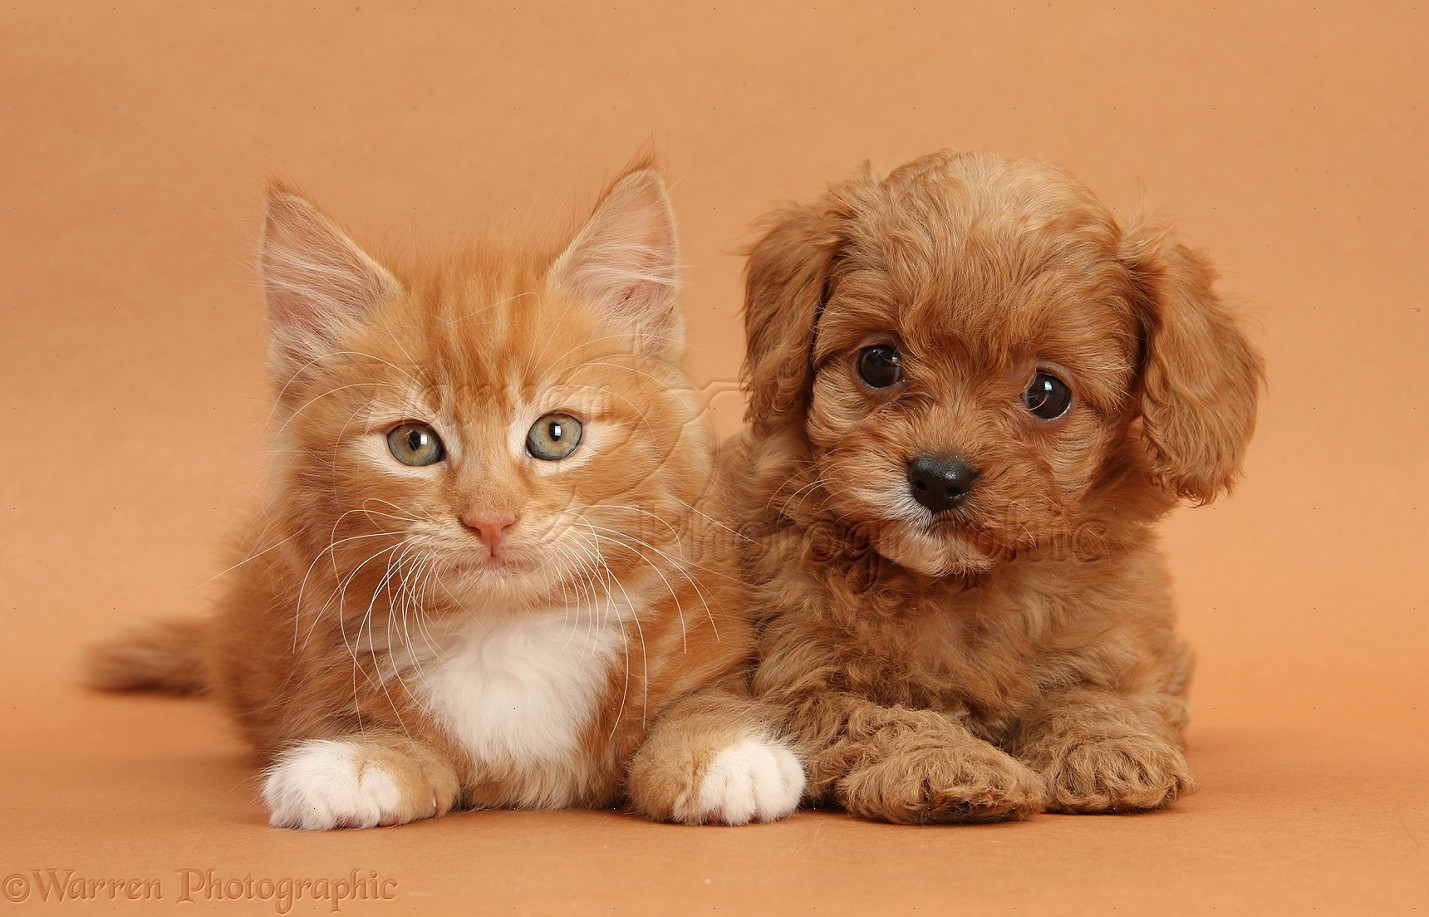 Dog And Cat Breed Together